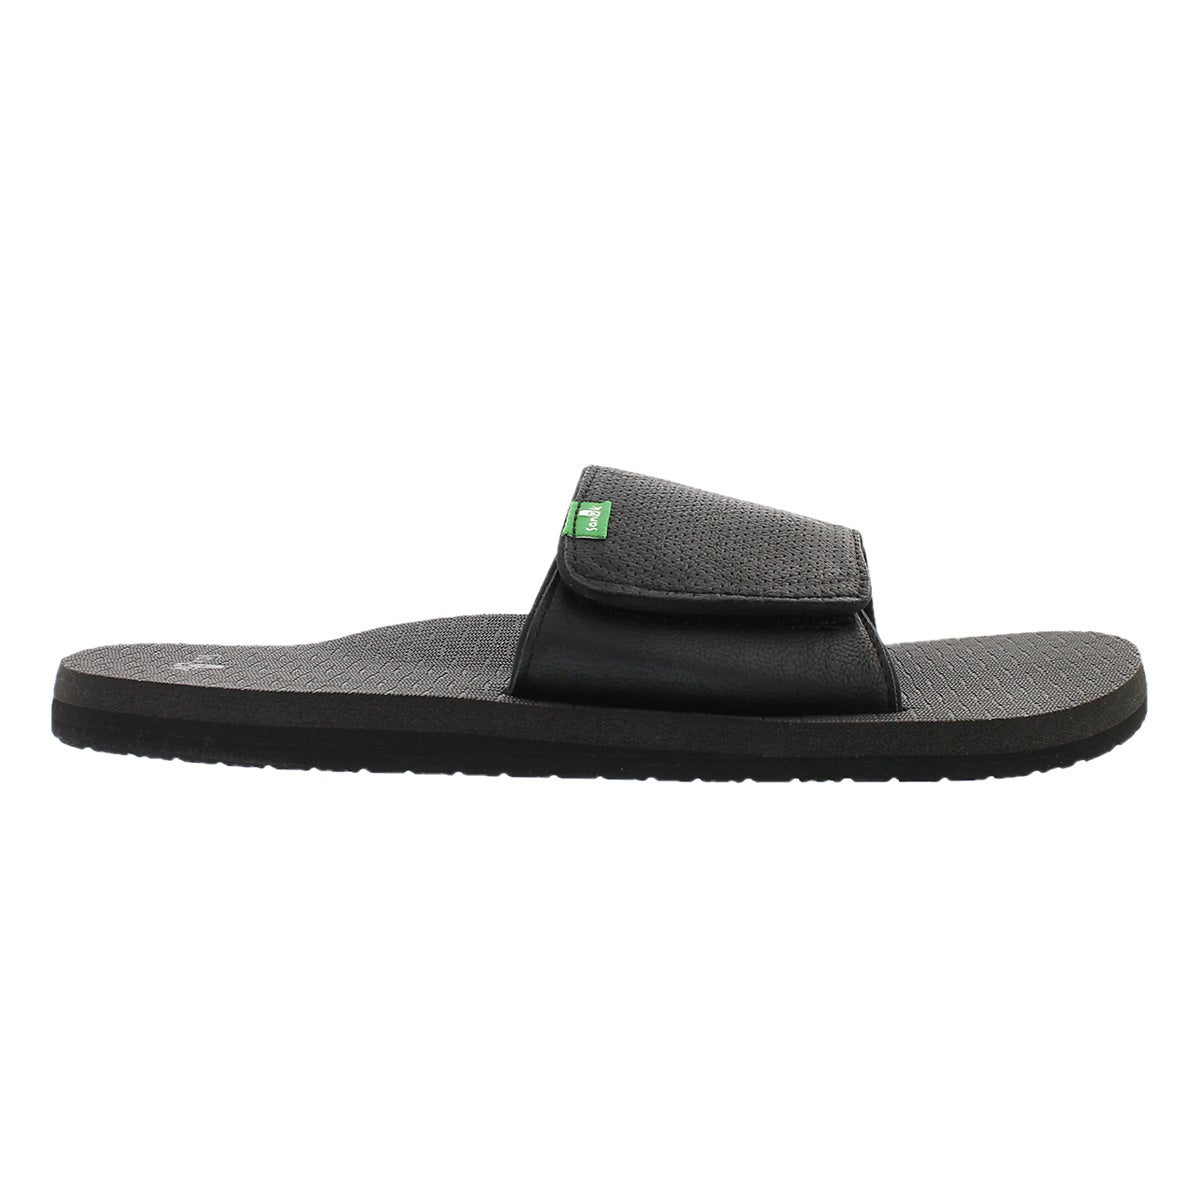 Mns Beer Cozy Light Slide black sandal